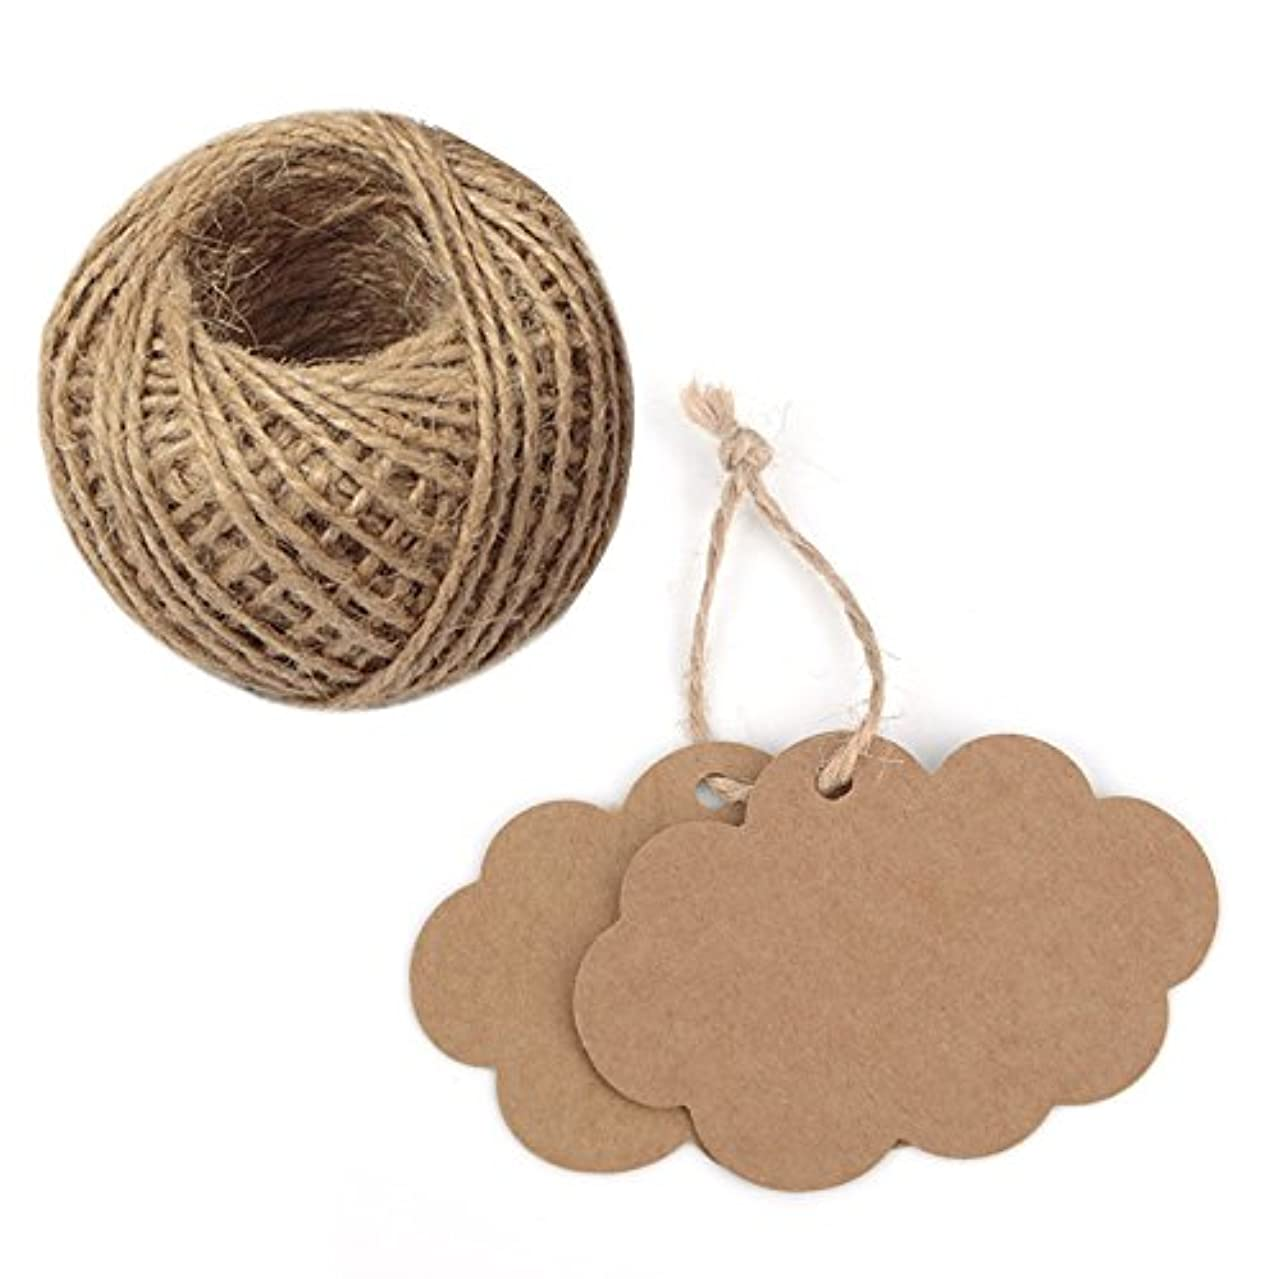 100 PCS Craft Paper Gift Tags 5CM 7CM Cloud Shape Wedding Party Favor Labels with 30 Meters Natural Jute Twine (Brown)